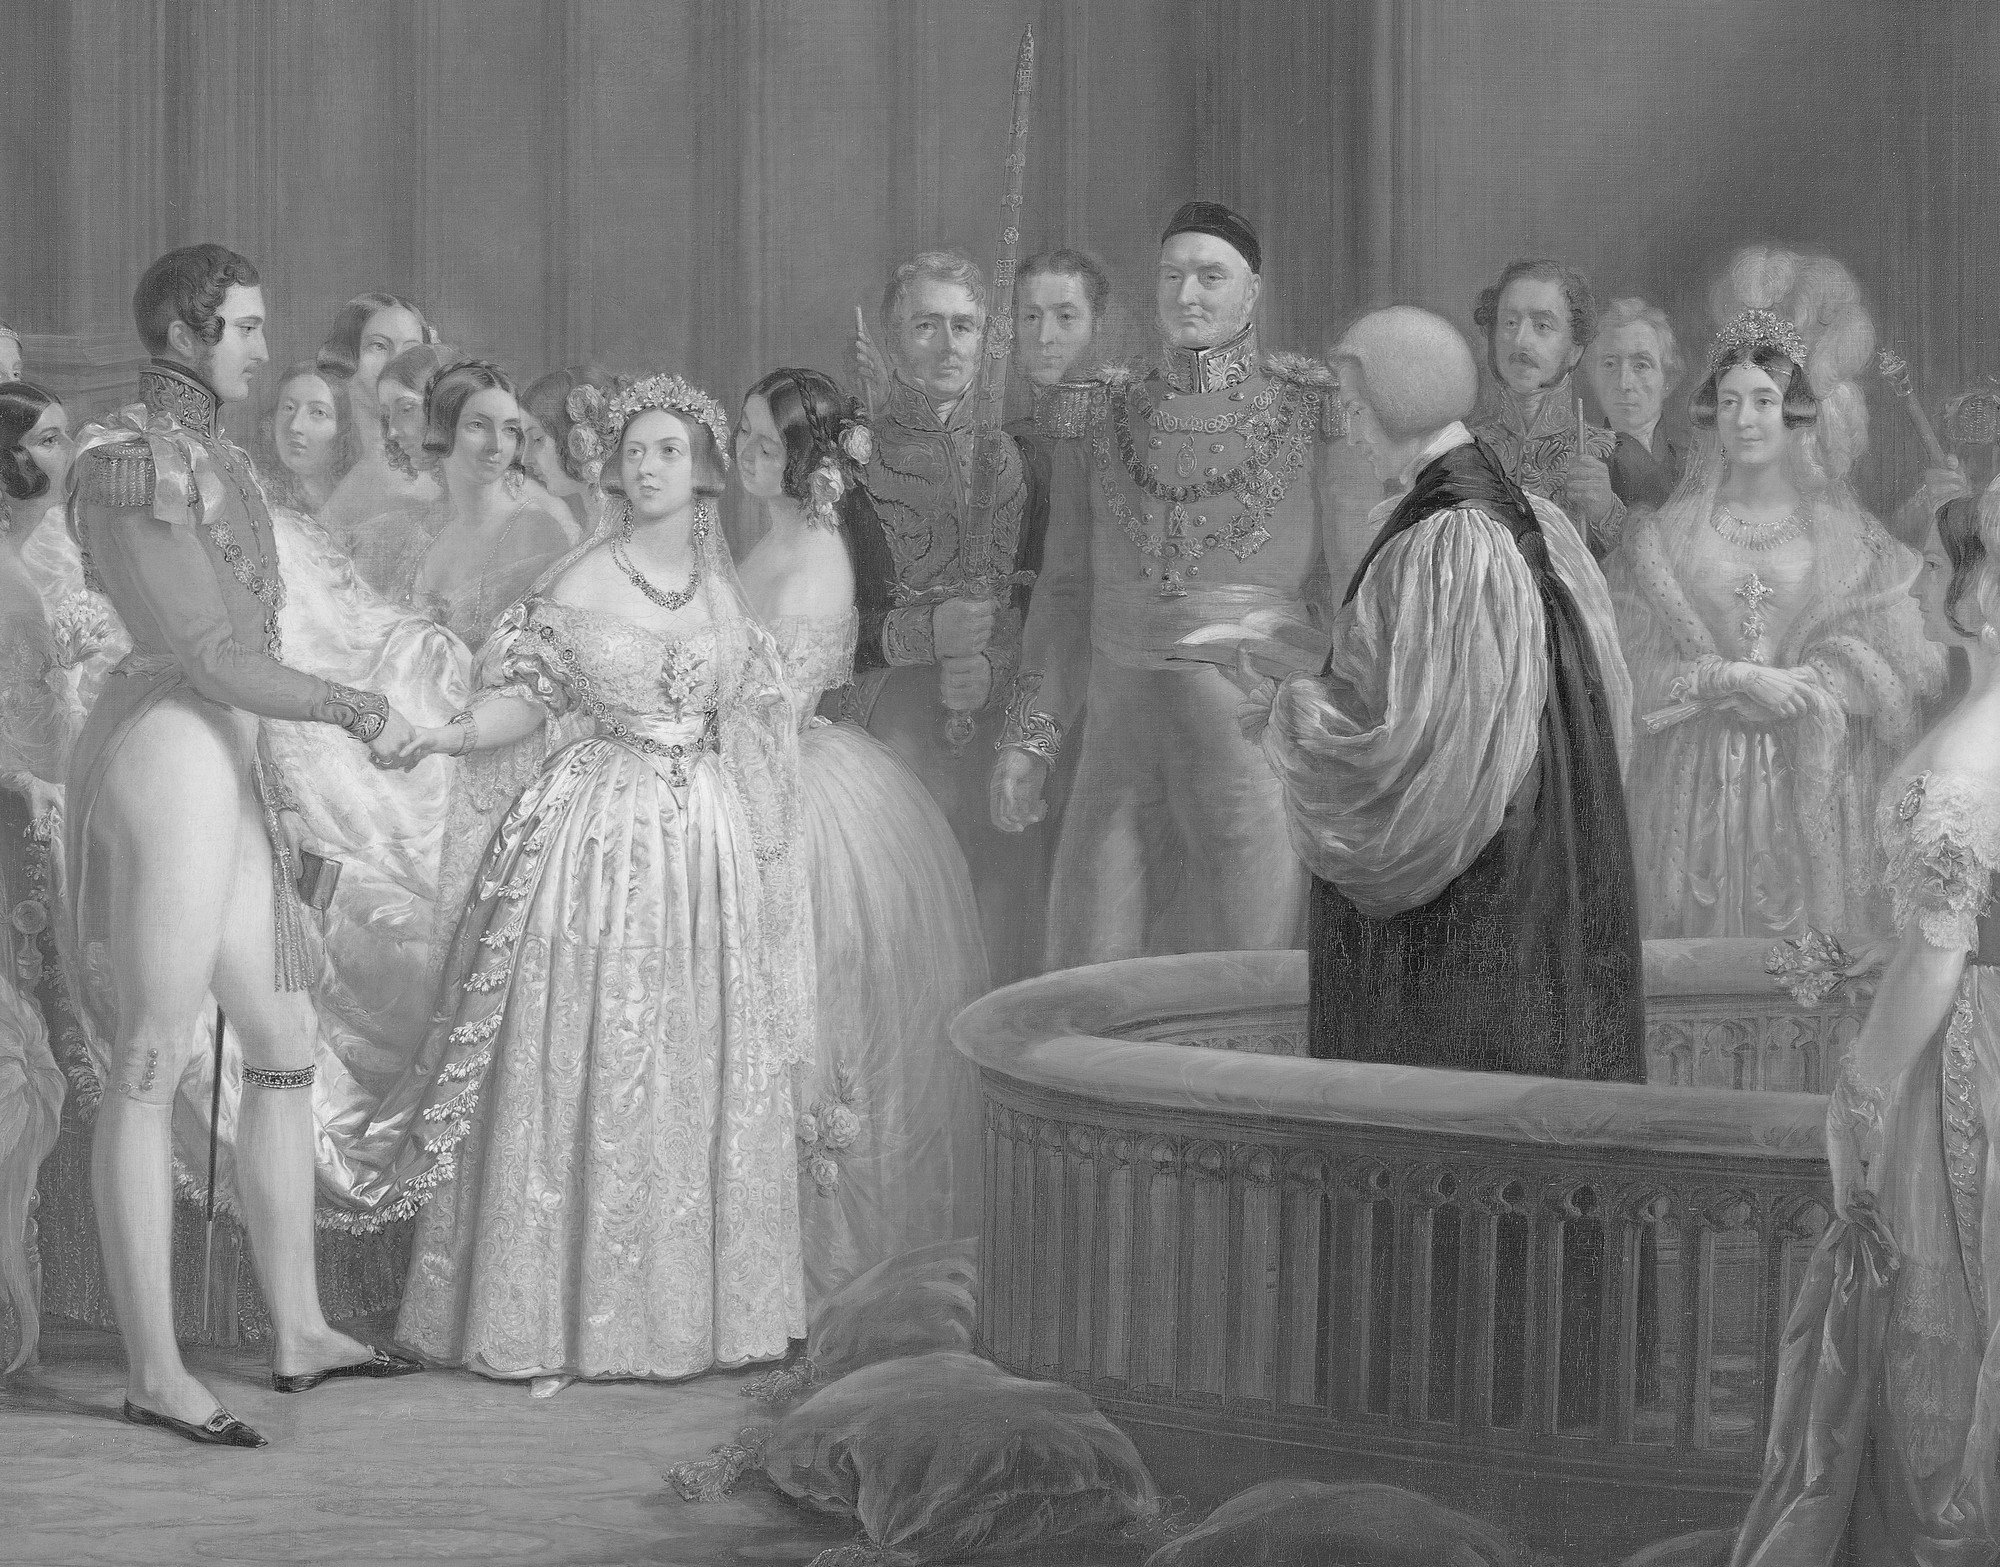 The Marriage of Queen Victoria to Prince Albert in the Chapel Royal